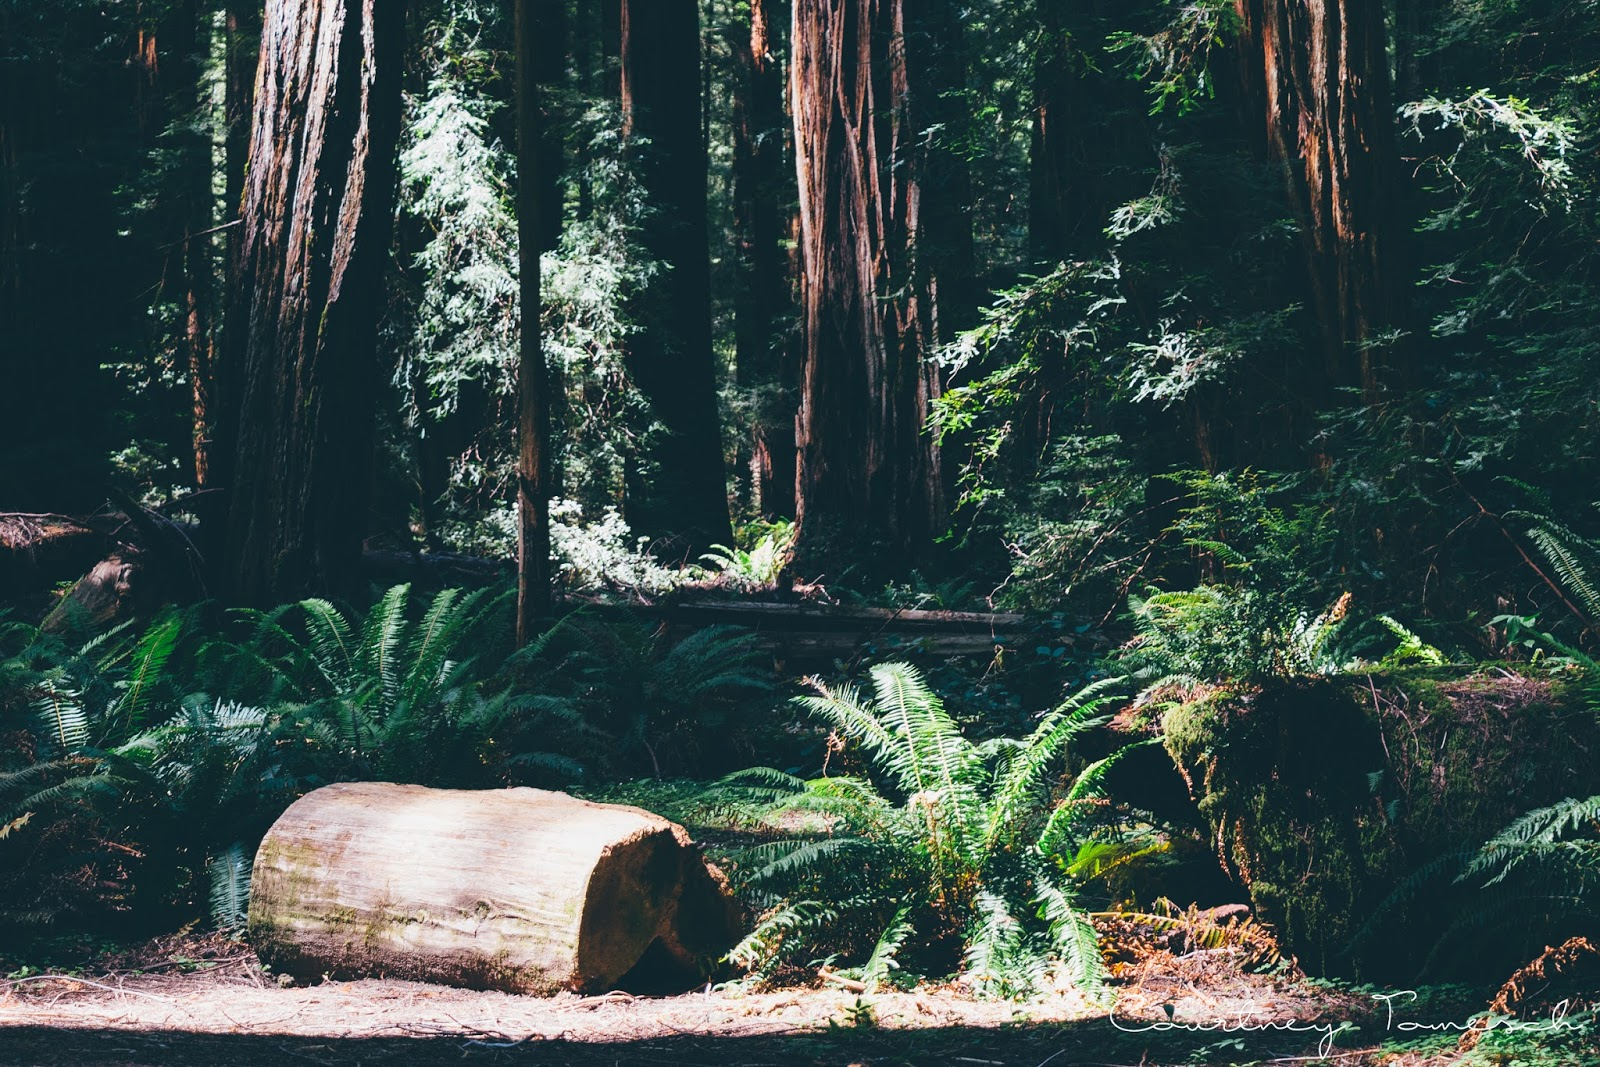 Courtney Tomesch Adventure to the Redwoods